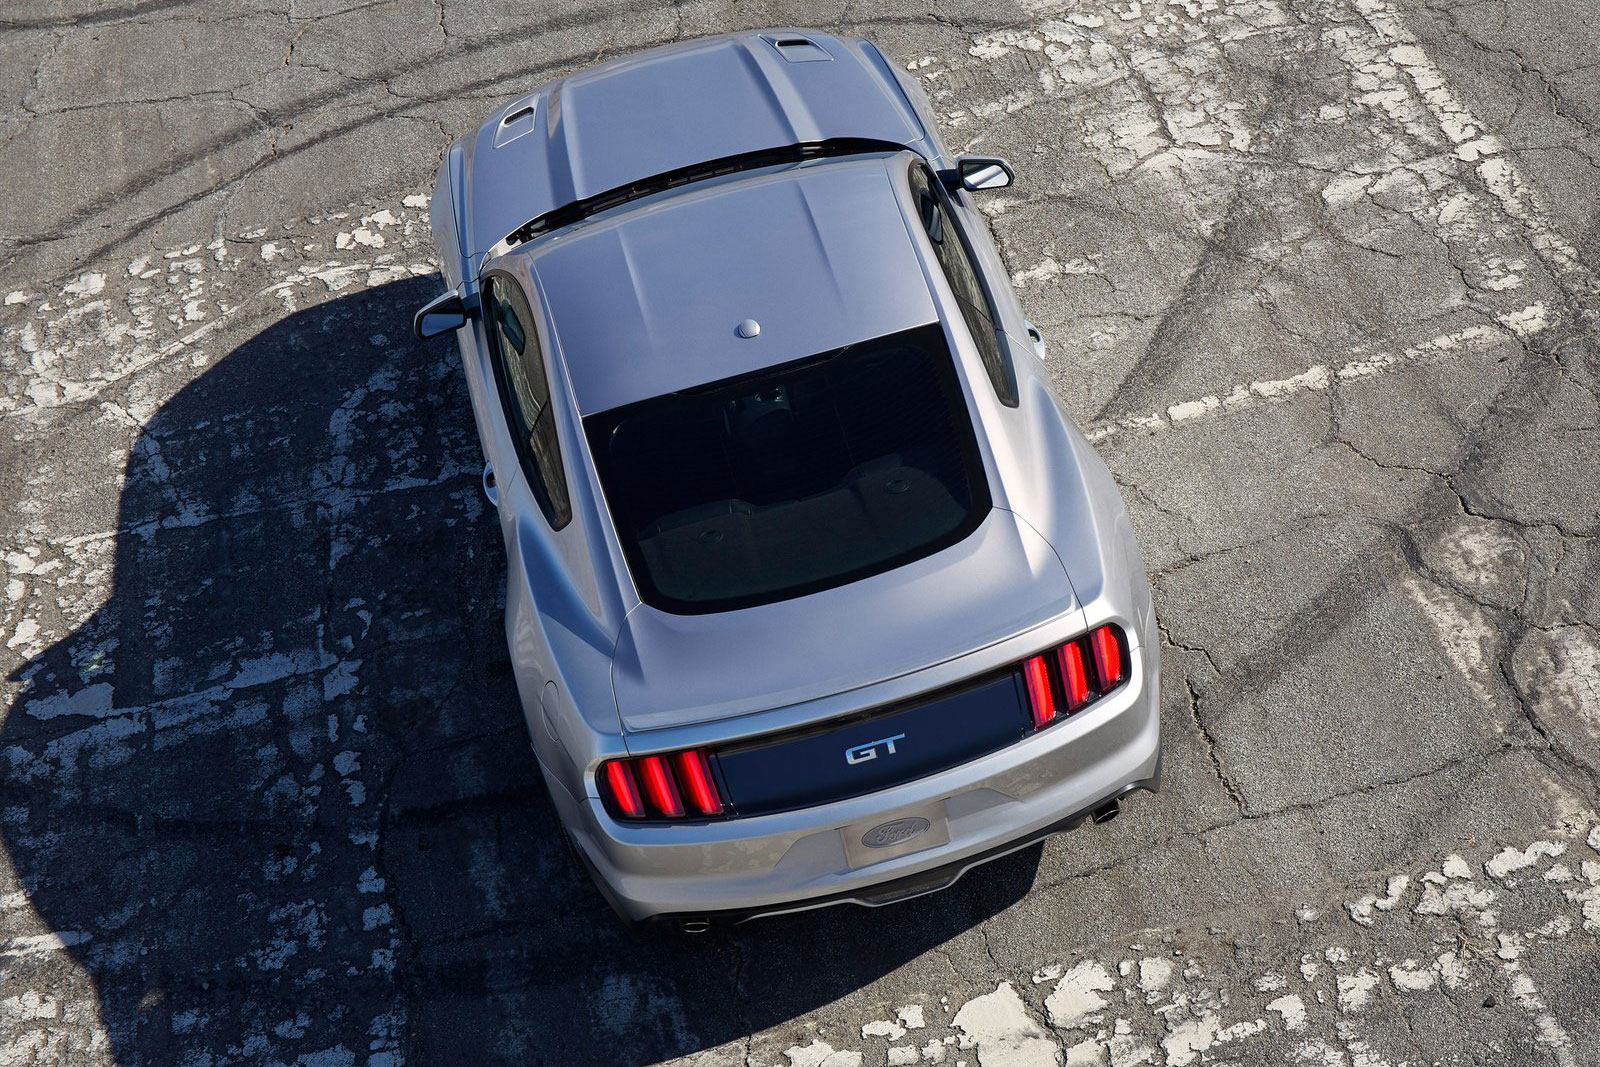 Ford Mustang GT 2014 (43)